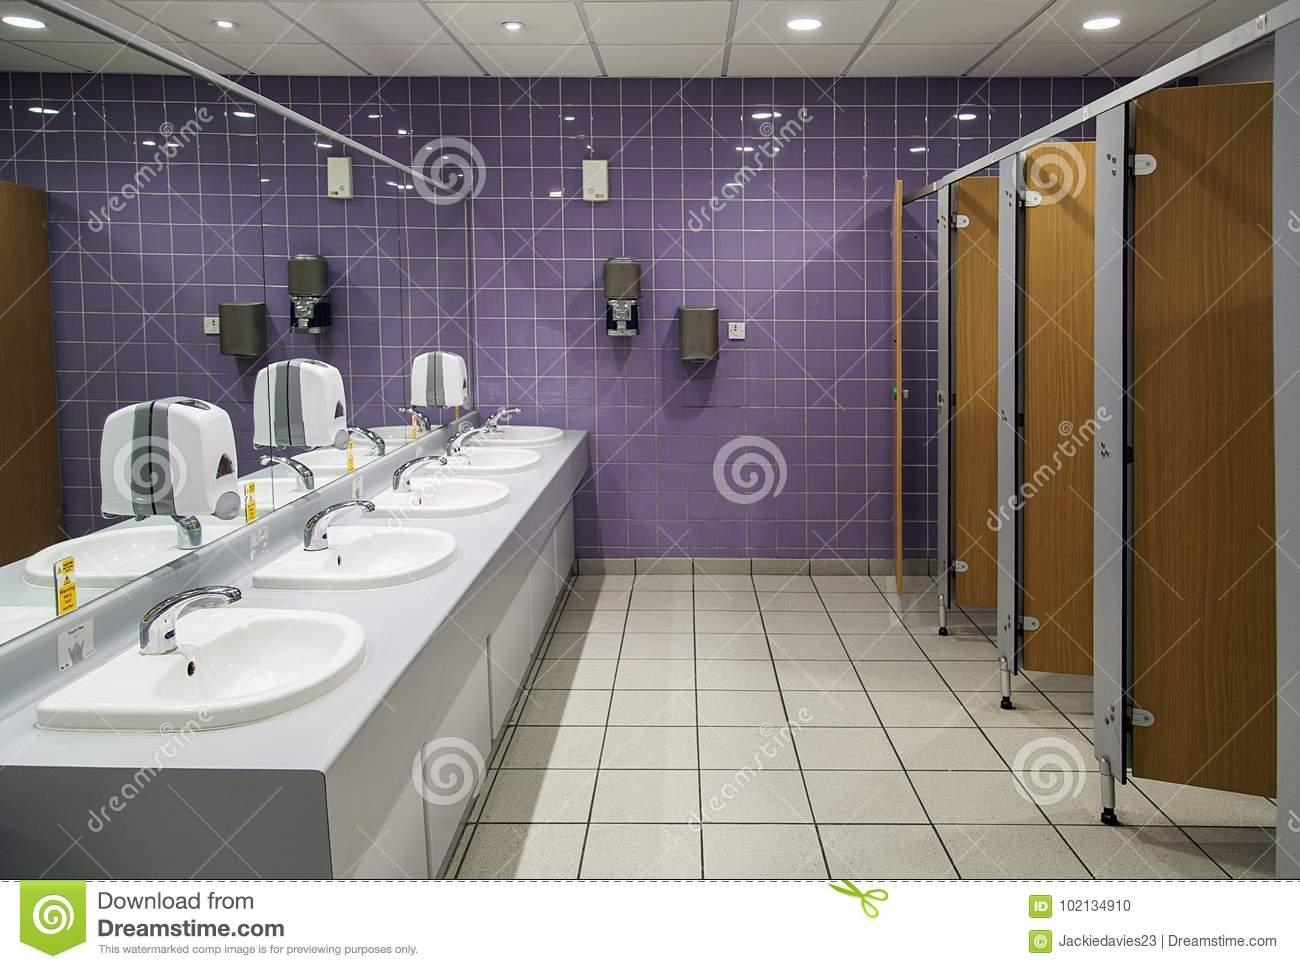 Bathroom With Mirrors Public Bathroom Stock Photo Image Of Handbasin Mirror 102134910